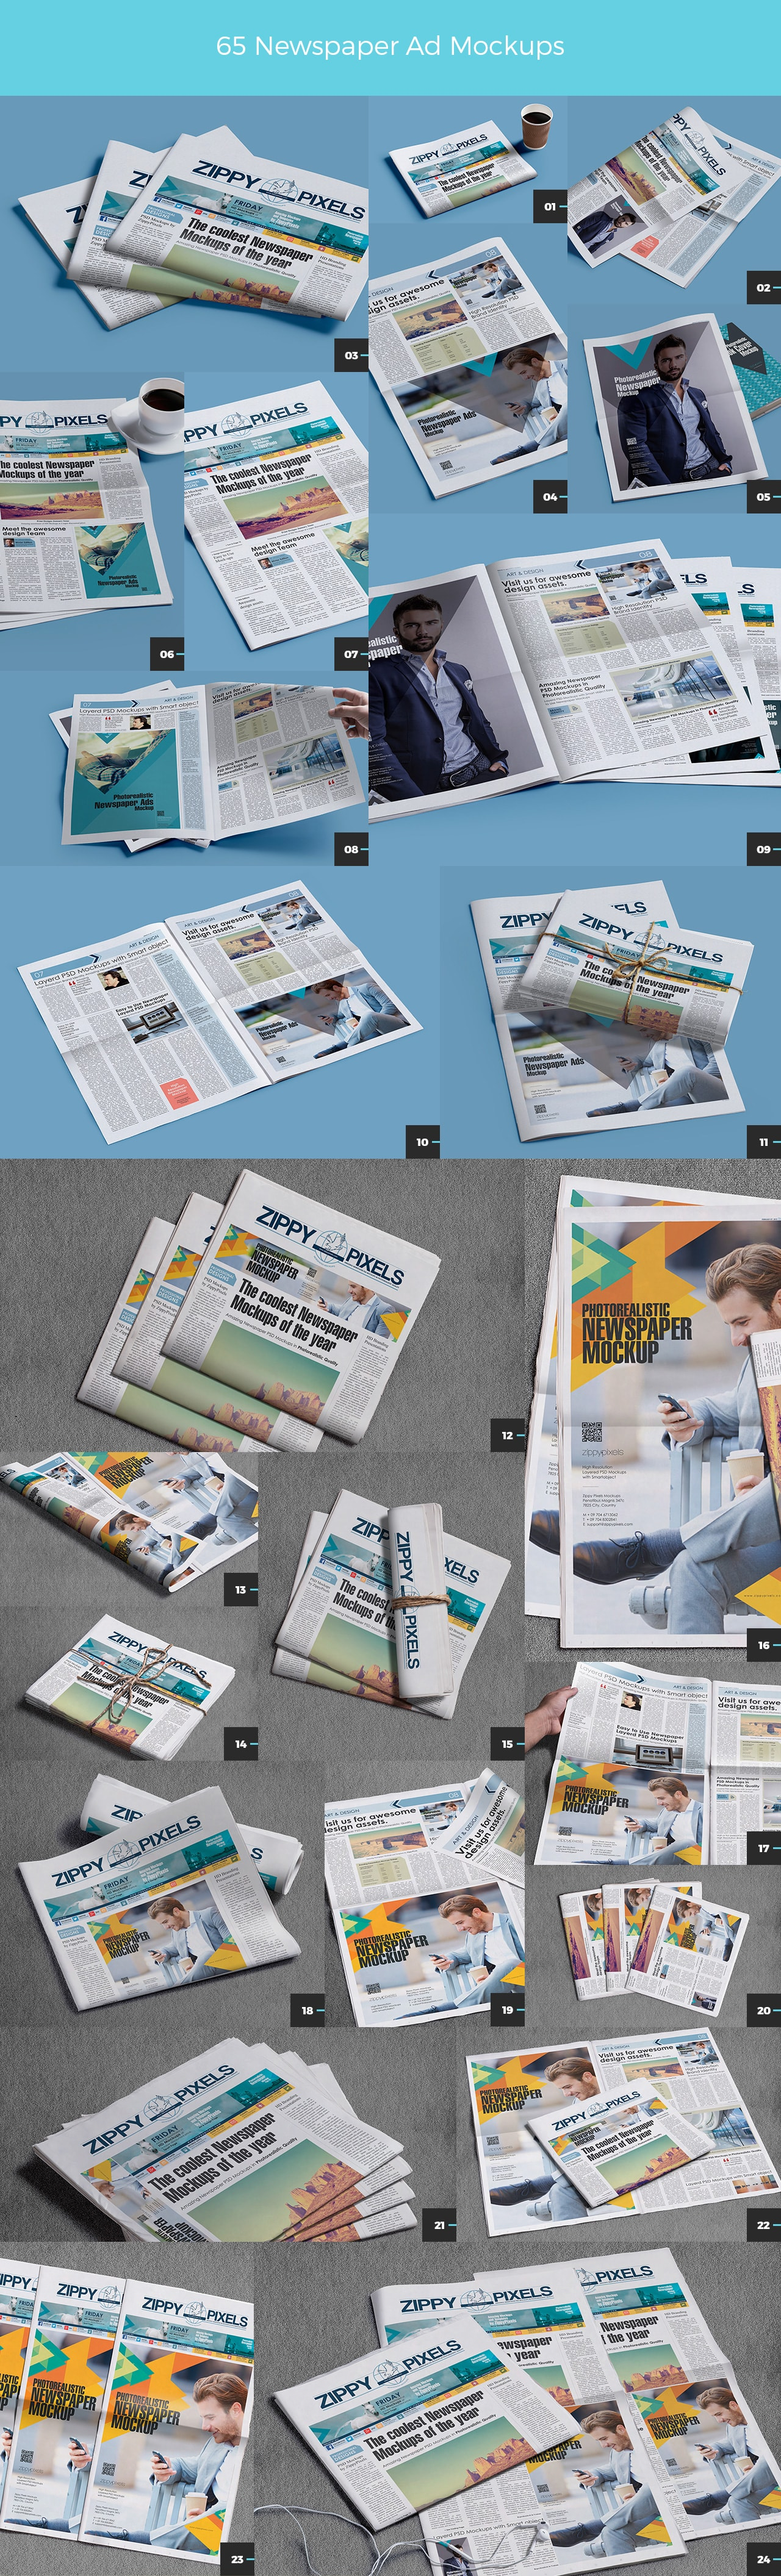 01 65 NEWSPAPER AD MOCKUPS (Part 1)